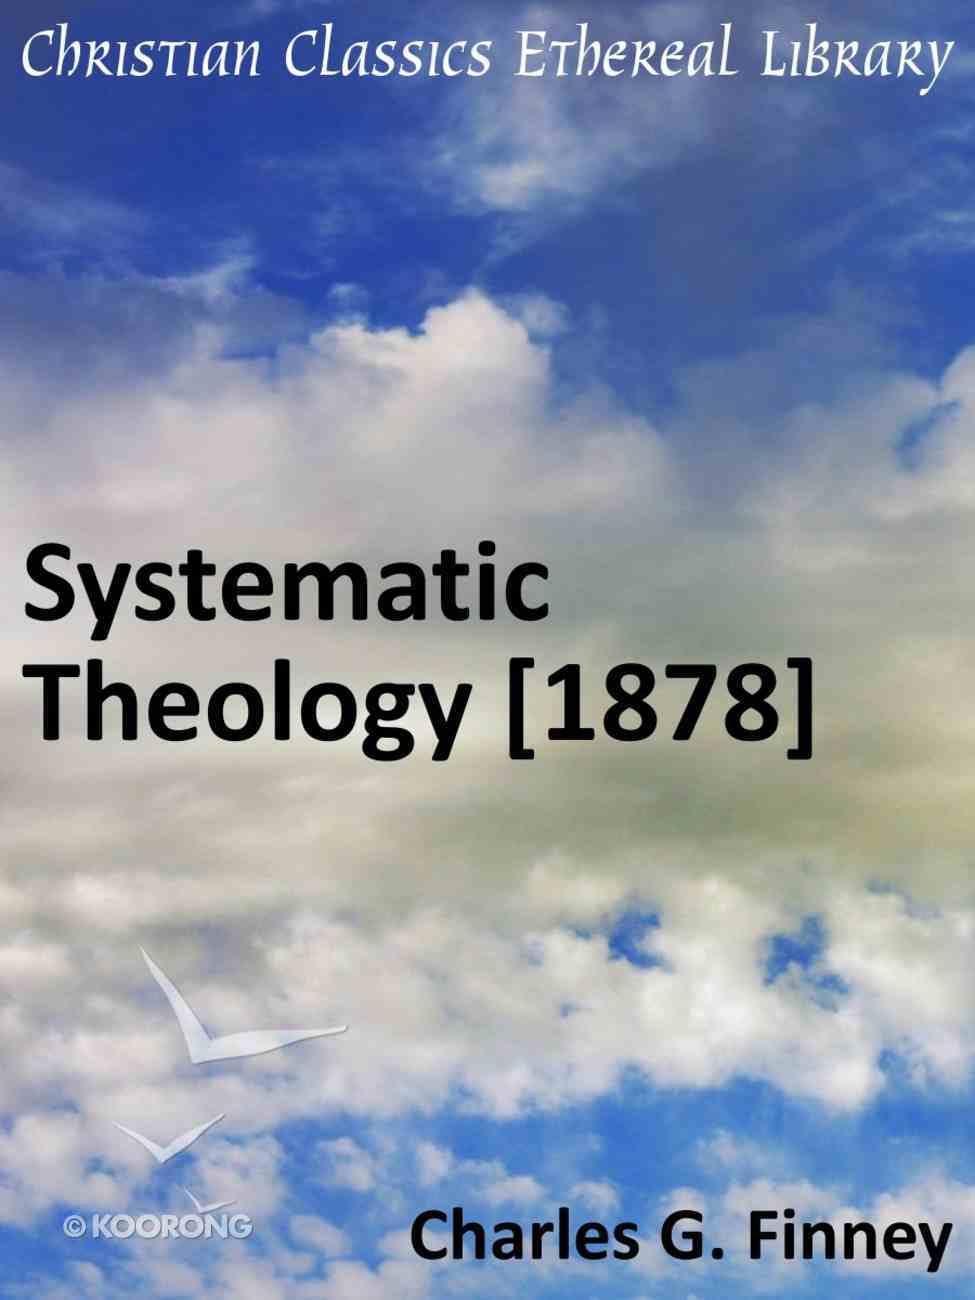 Systematic Theology (1878) eBook